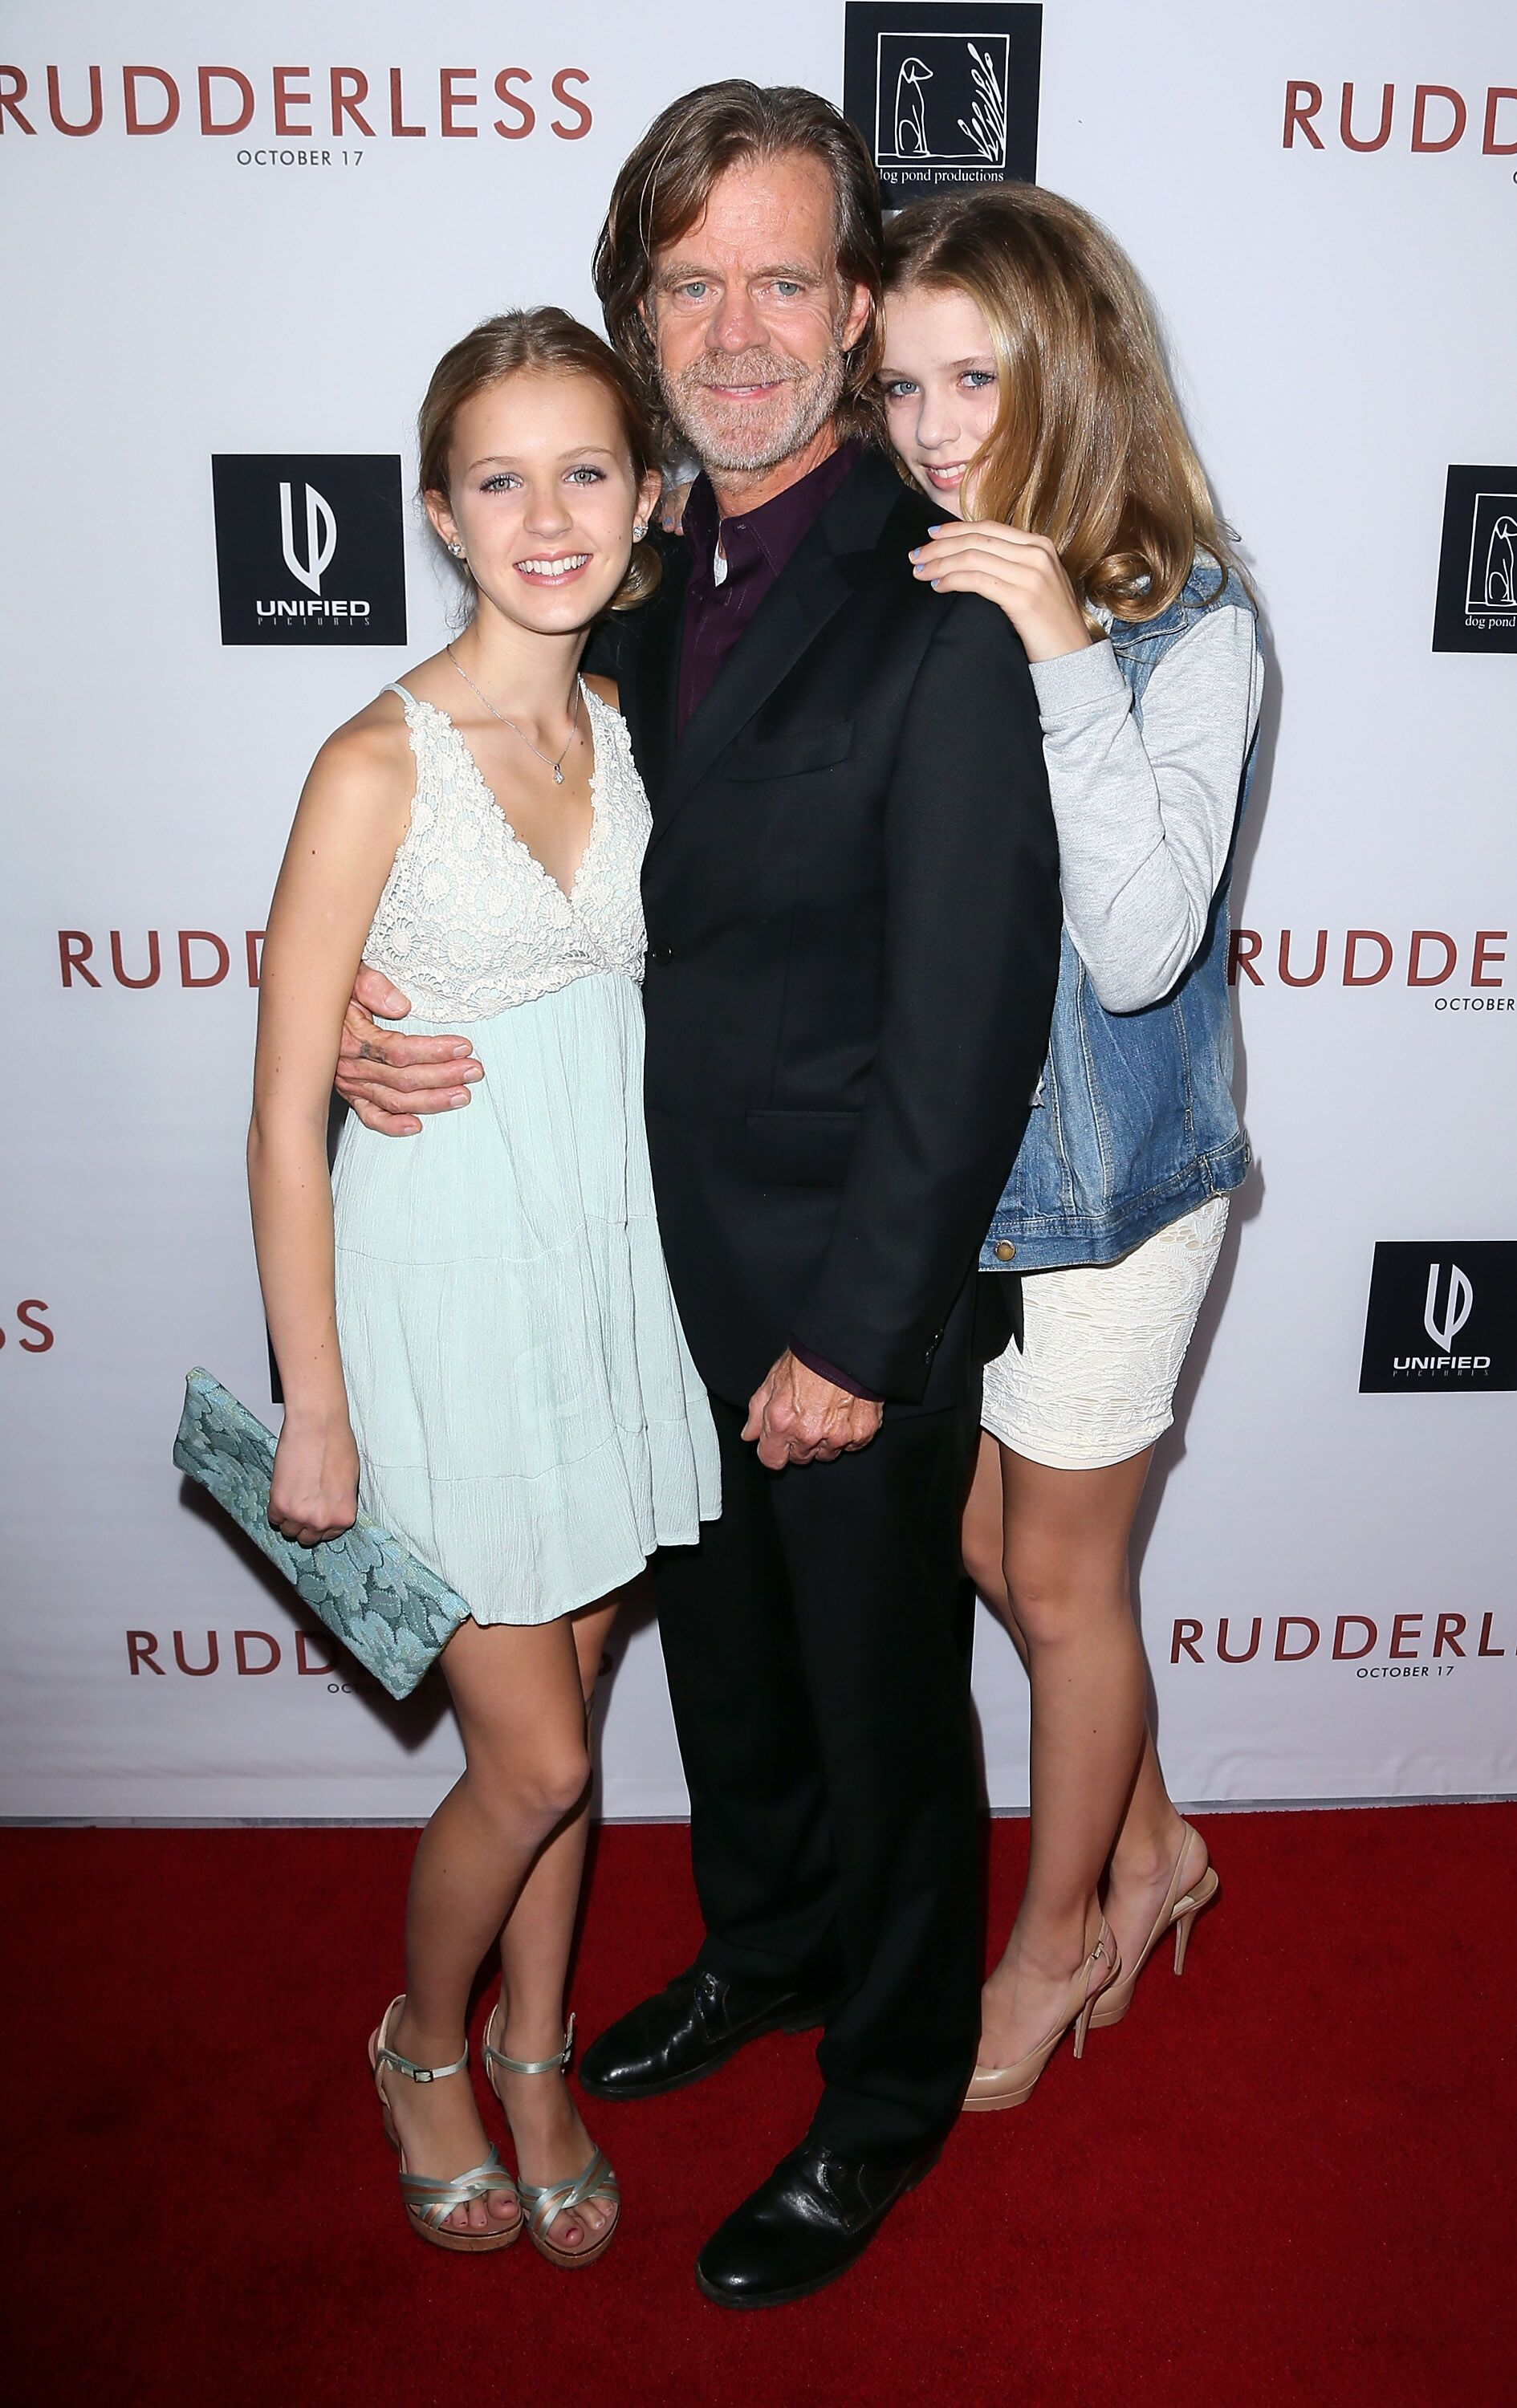 William H. Macy and his daughters at a screening of Rudderless on October 7, 2014, in Los Angeles, California | Photo: David Livingston/Getty Images